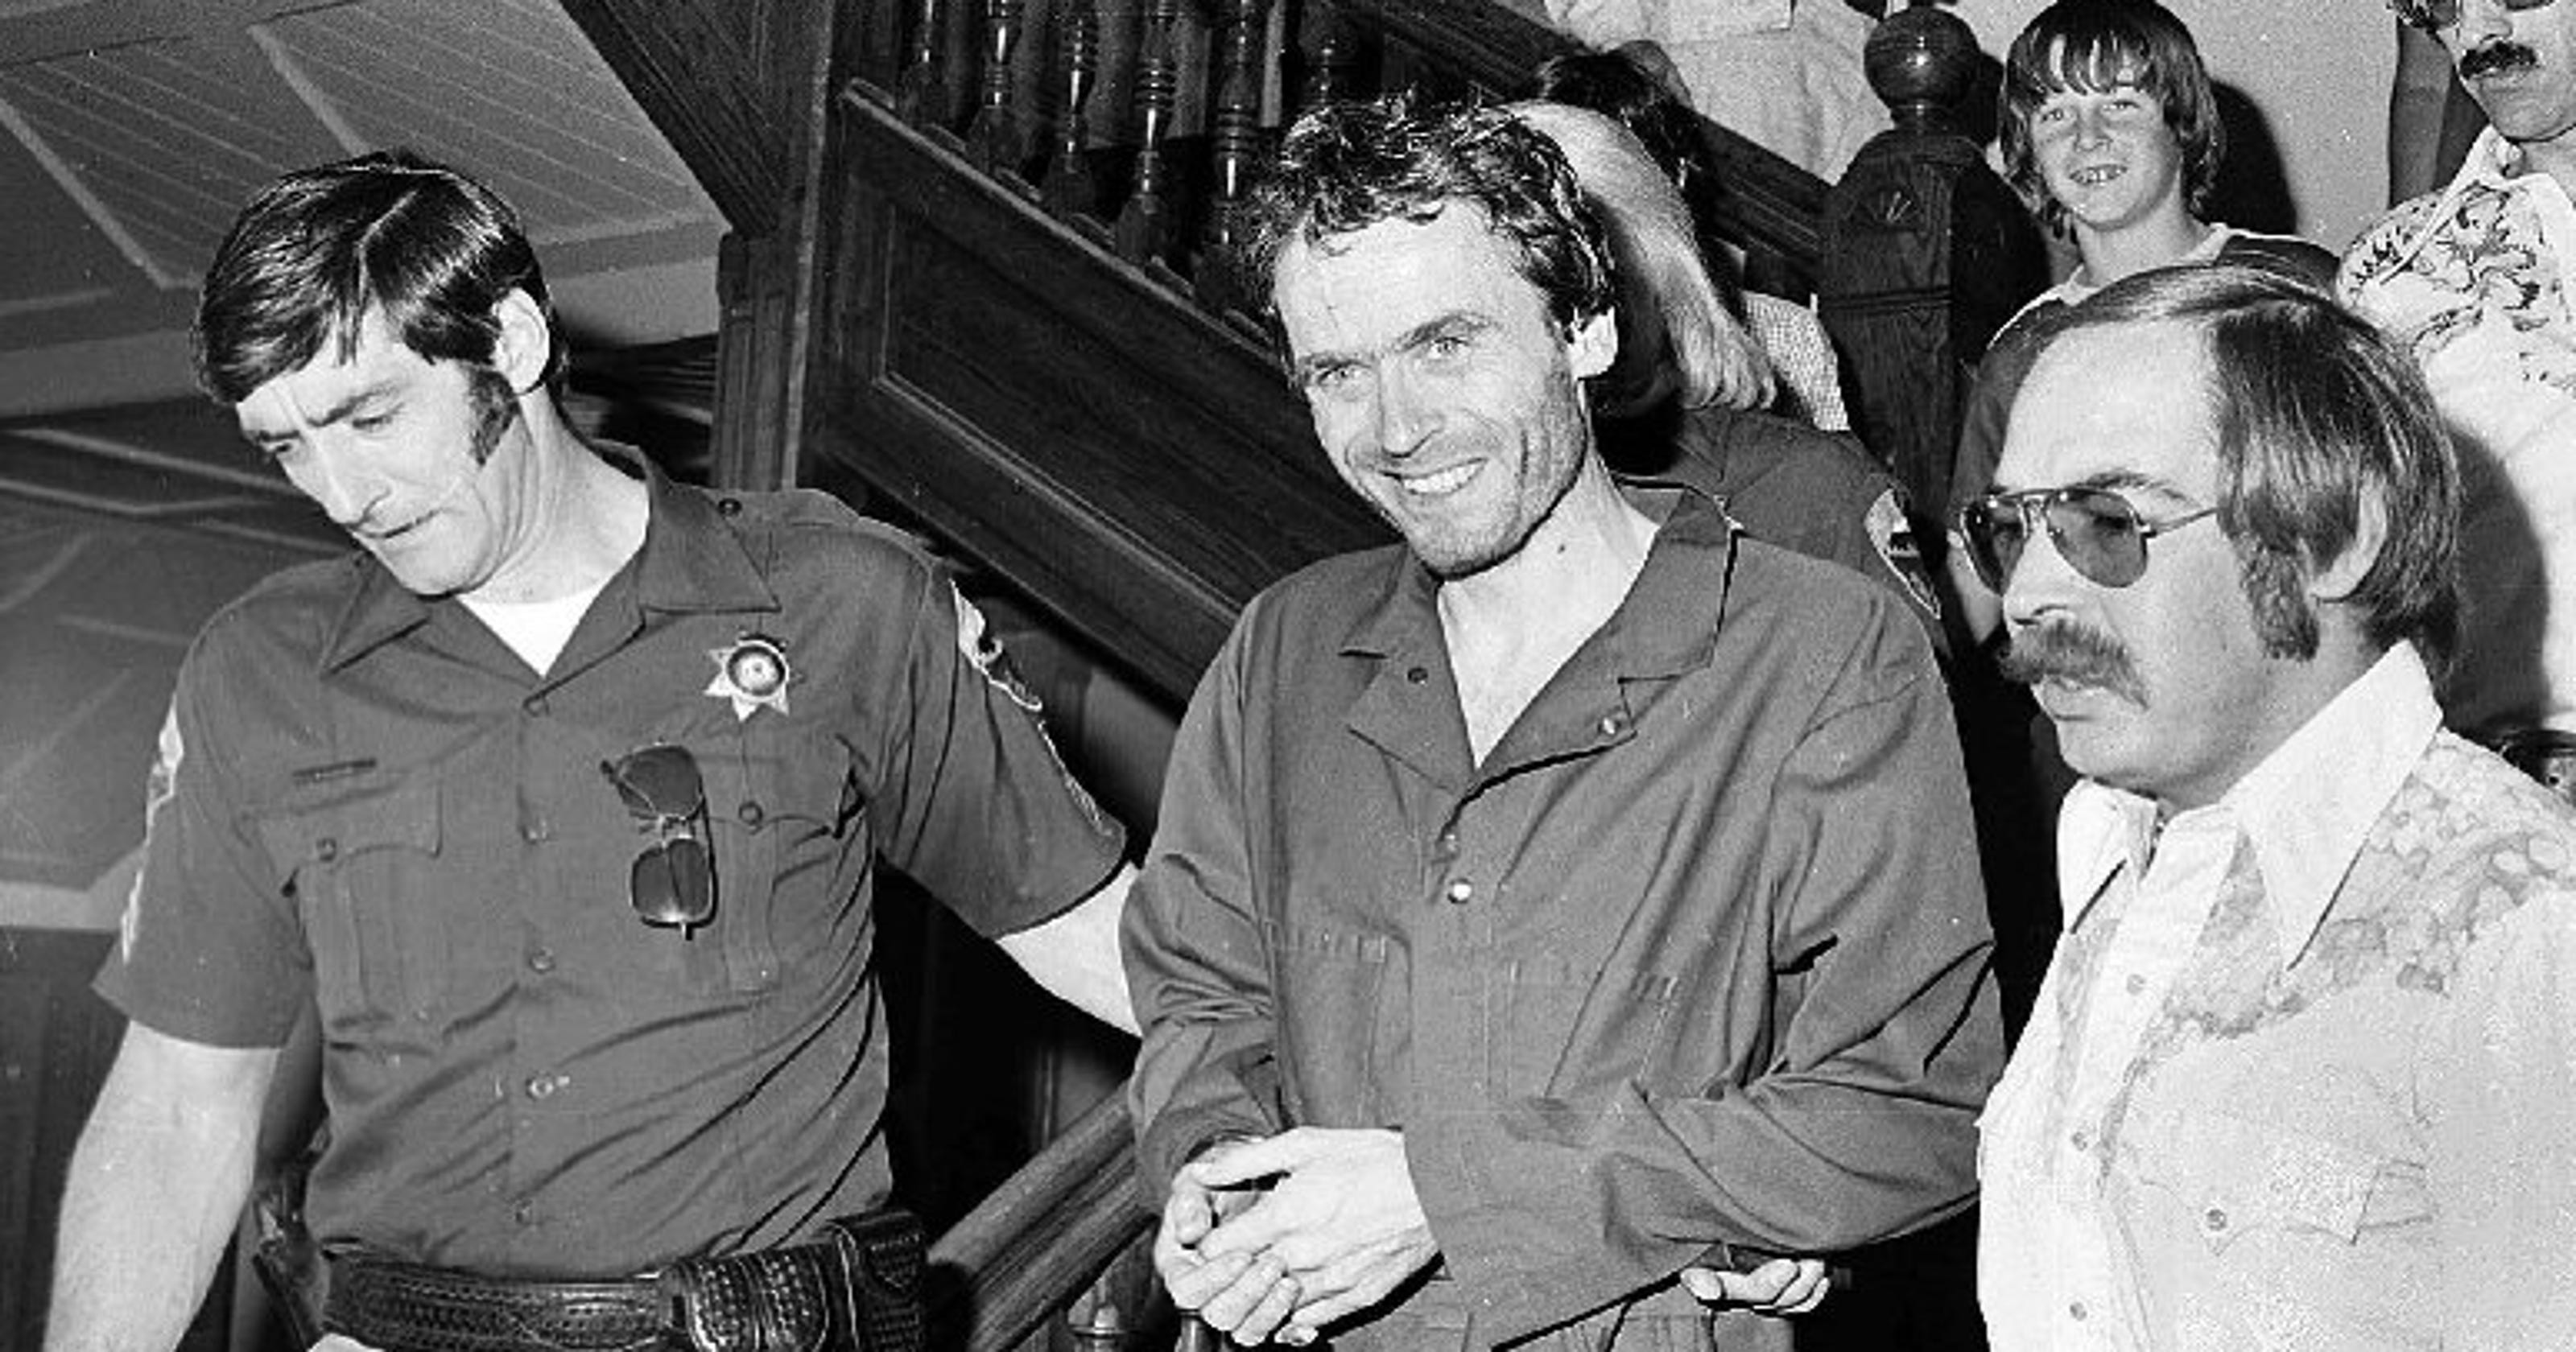 photos of serial killer ted bundy found in old colorado safe